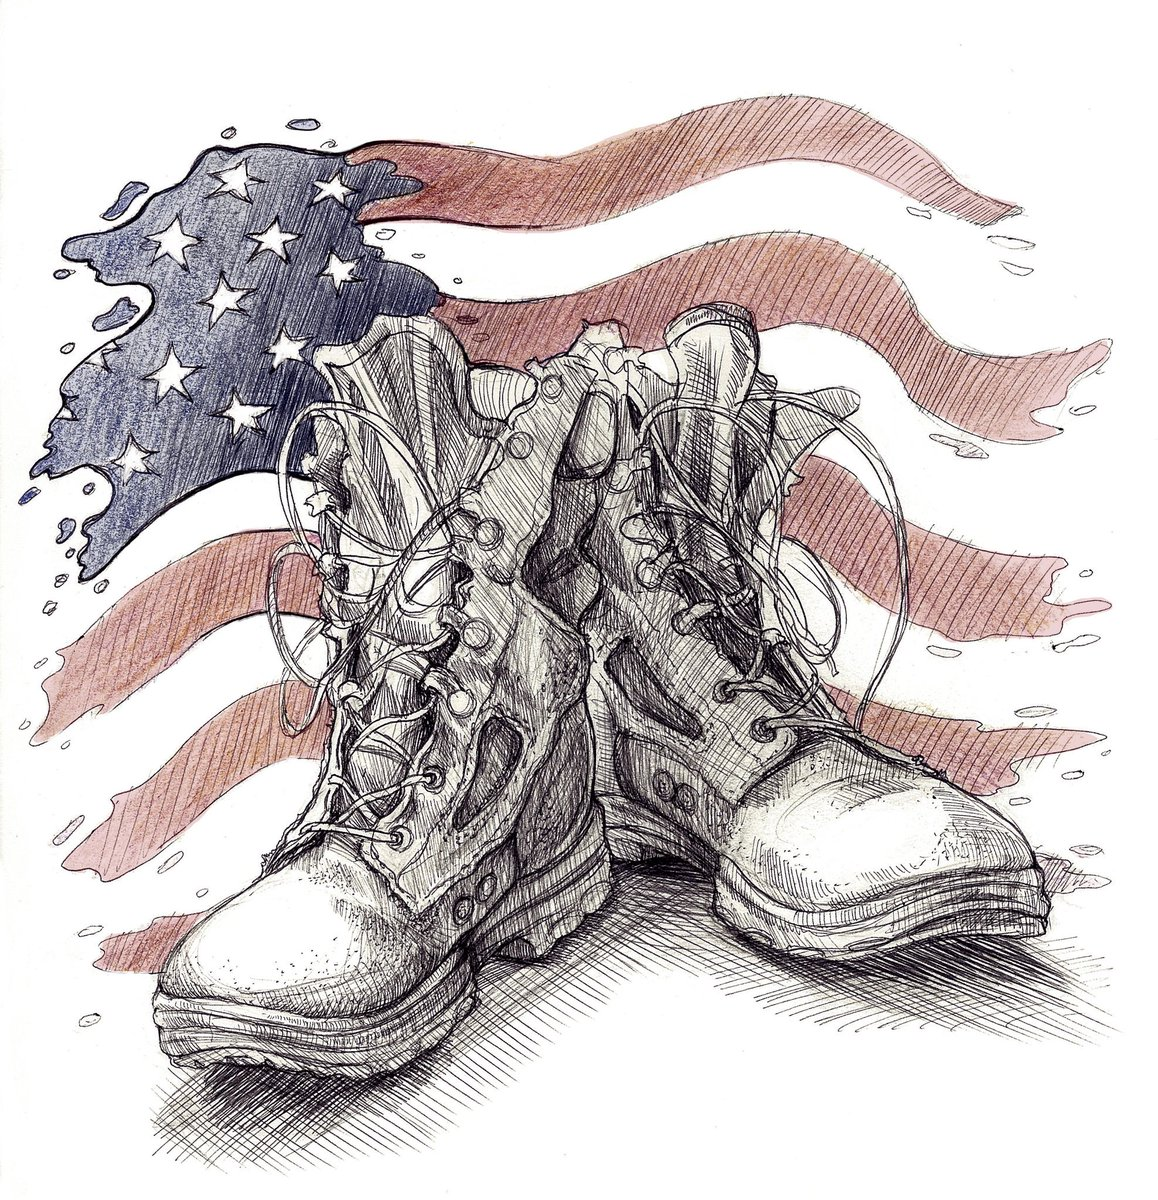 Thank you to all who served. #VeteransDay